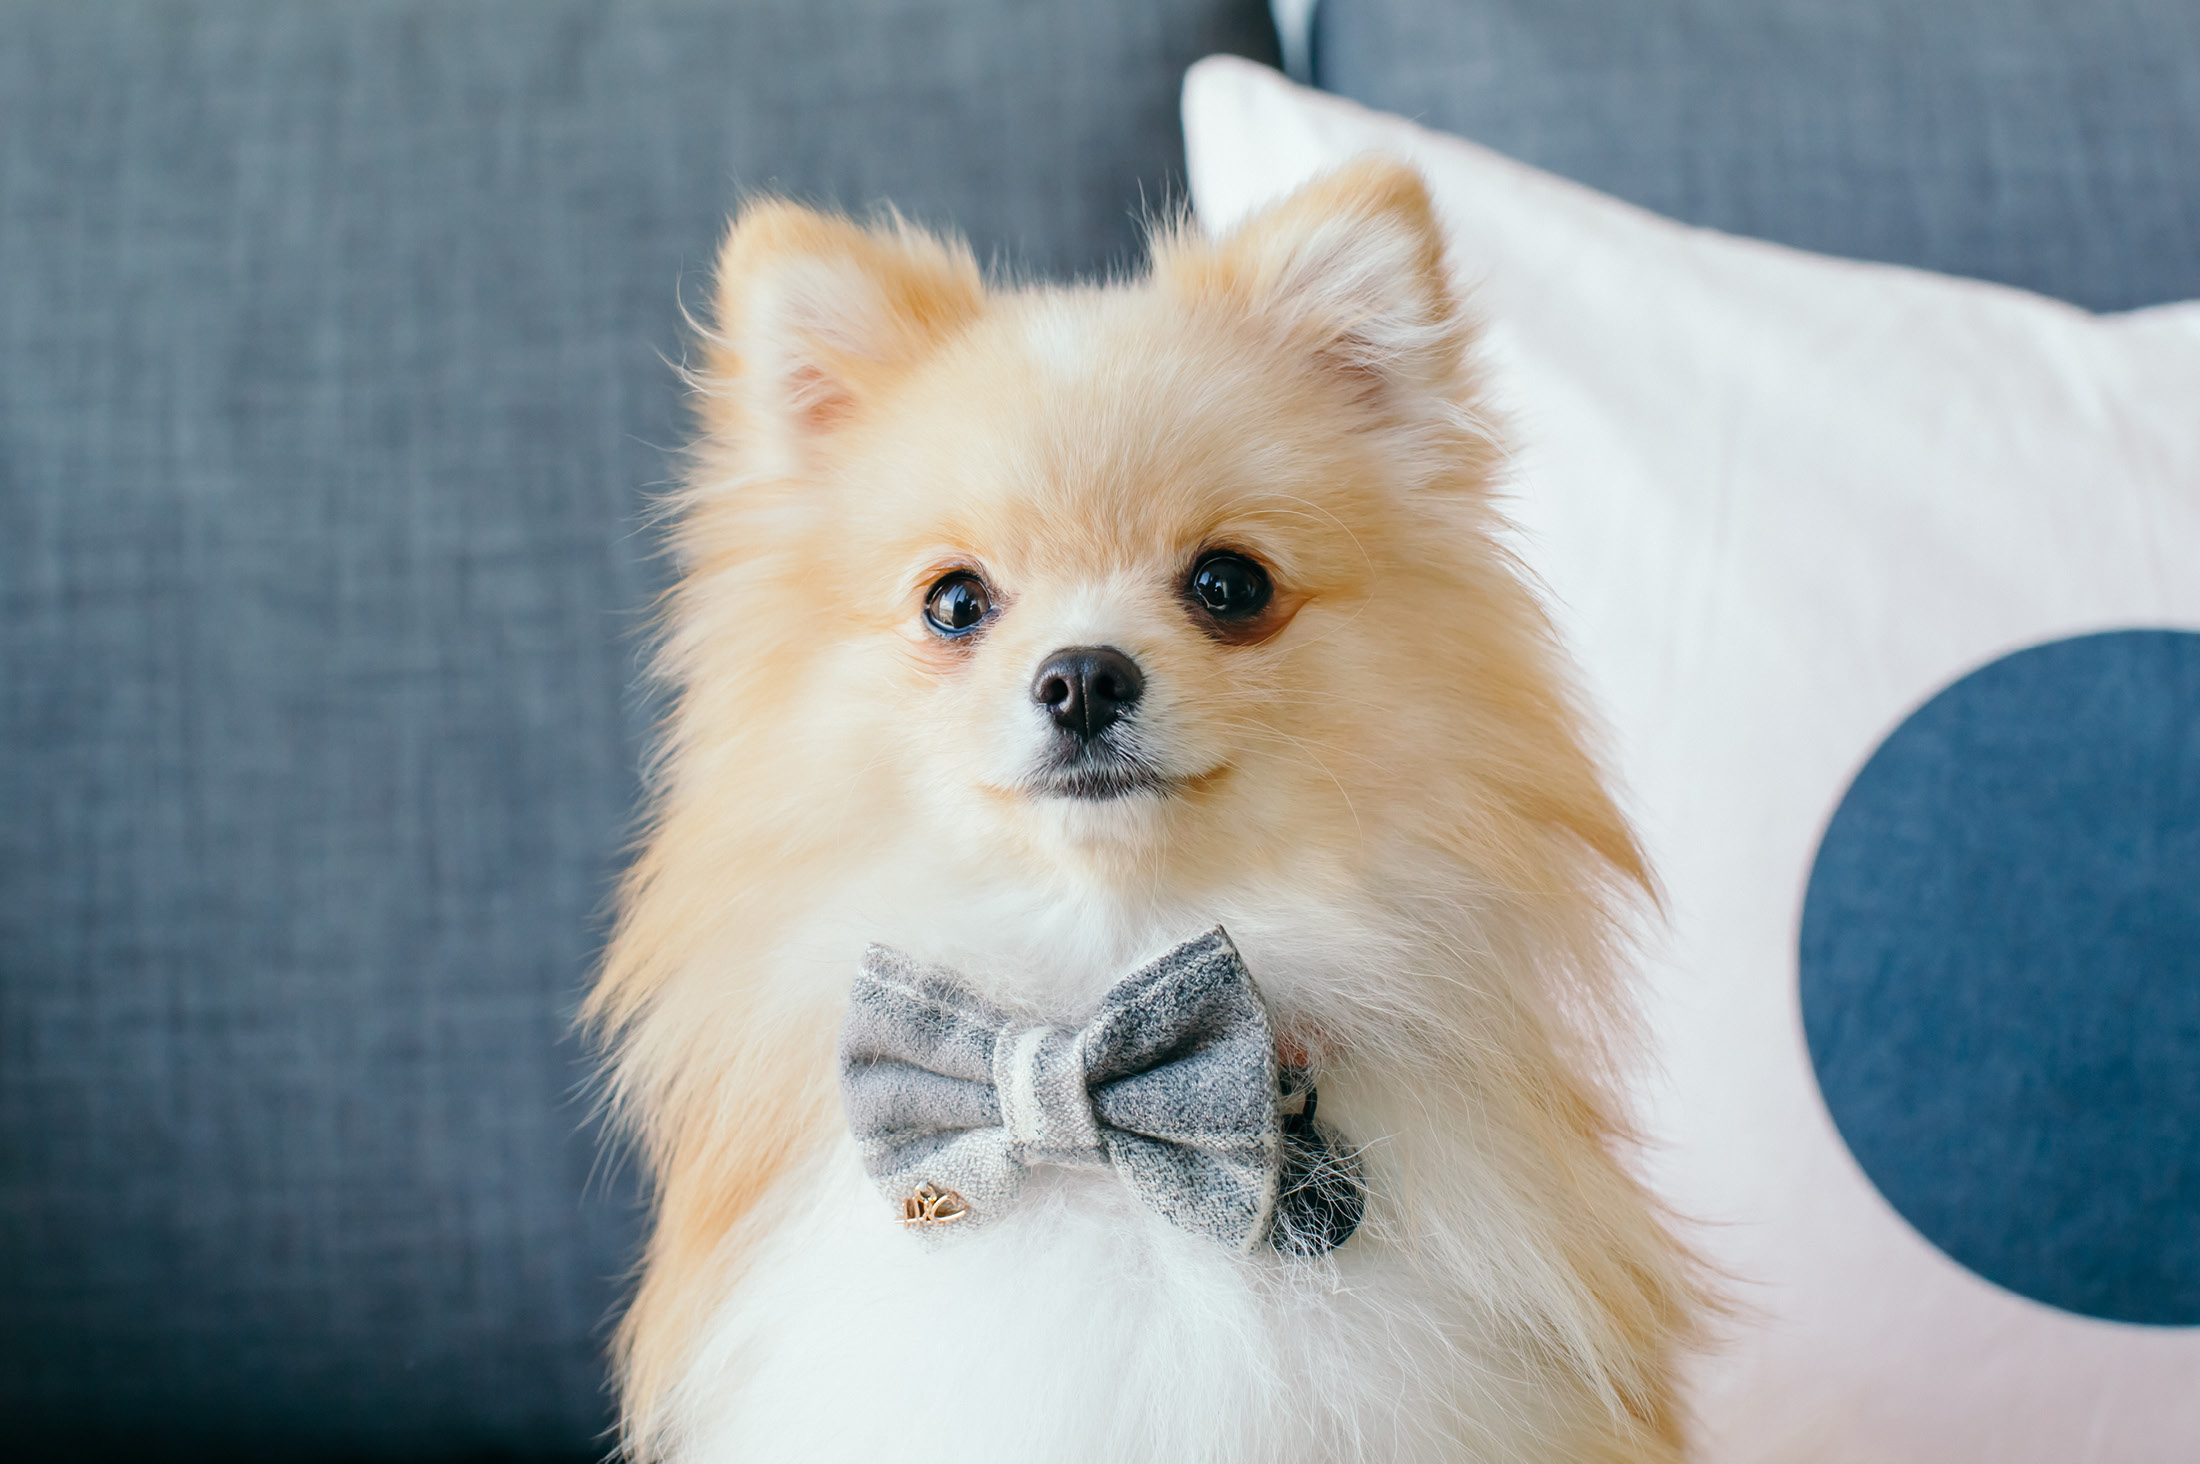 Stylish mini pomeranian with bow tie - 6 Simple pet photography tips